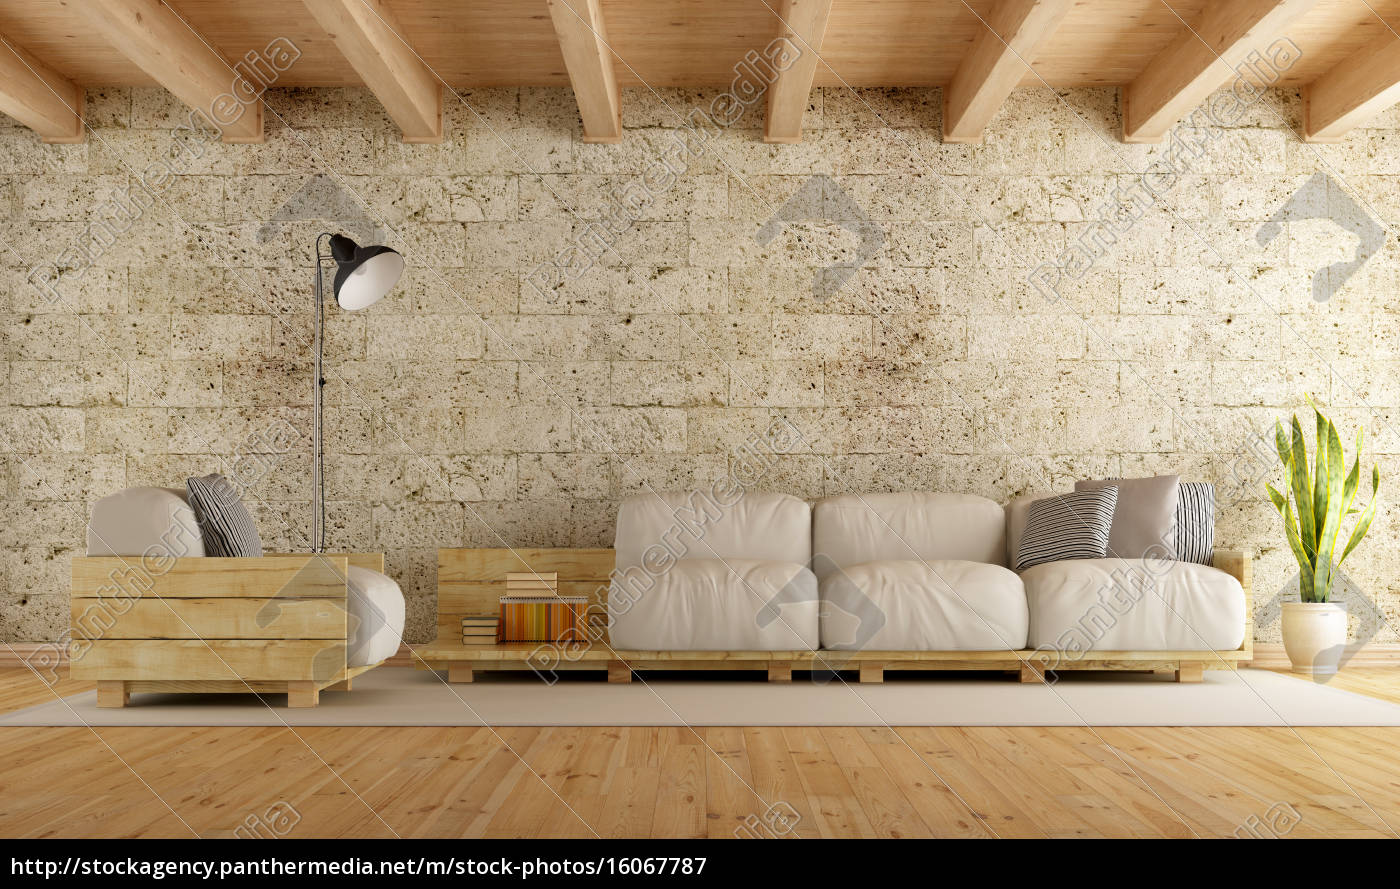 Modern Living Room Wth Pallet Sofa Royalty Free Image 16067787 Panthermedia Stock Agency